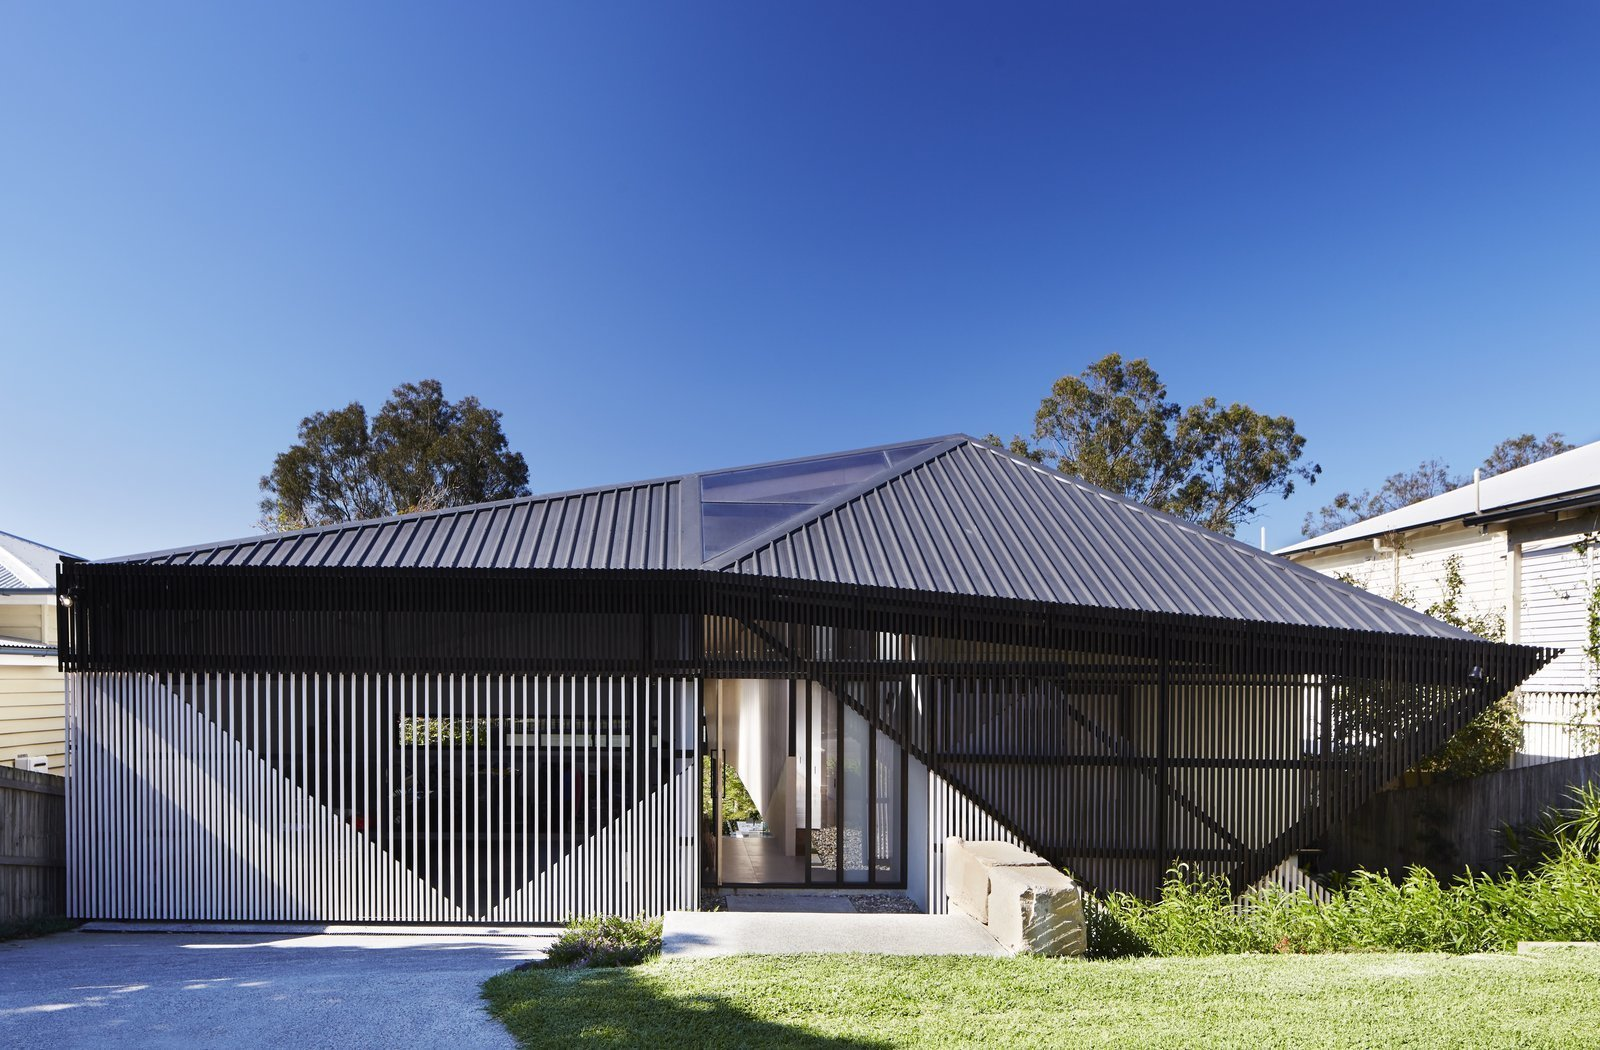 Exterior, Metal Roof Material, and House Building Type Using slats with varieds widths of space between them, Bureau Proberts created a striking angular slatted façade for this Brisbane home, which reveals triangular shapes, while hinting at the life concealed within.  Best Photos from 9 Best Homes With Interesting Screened Facades